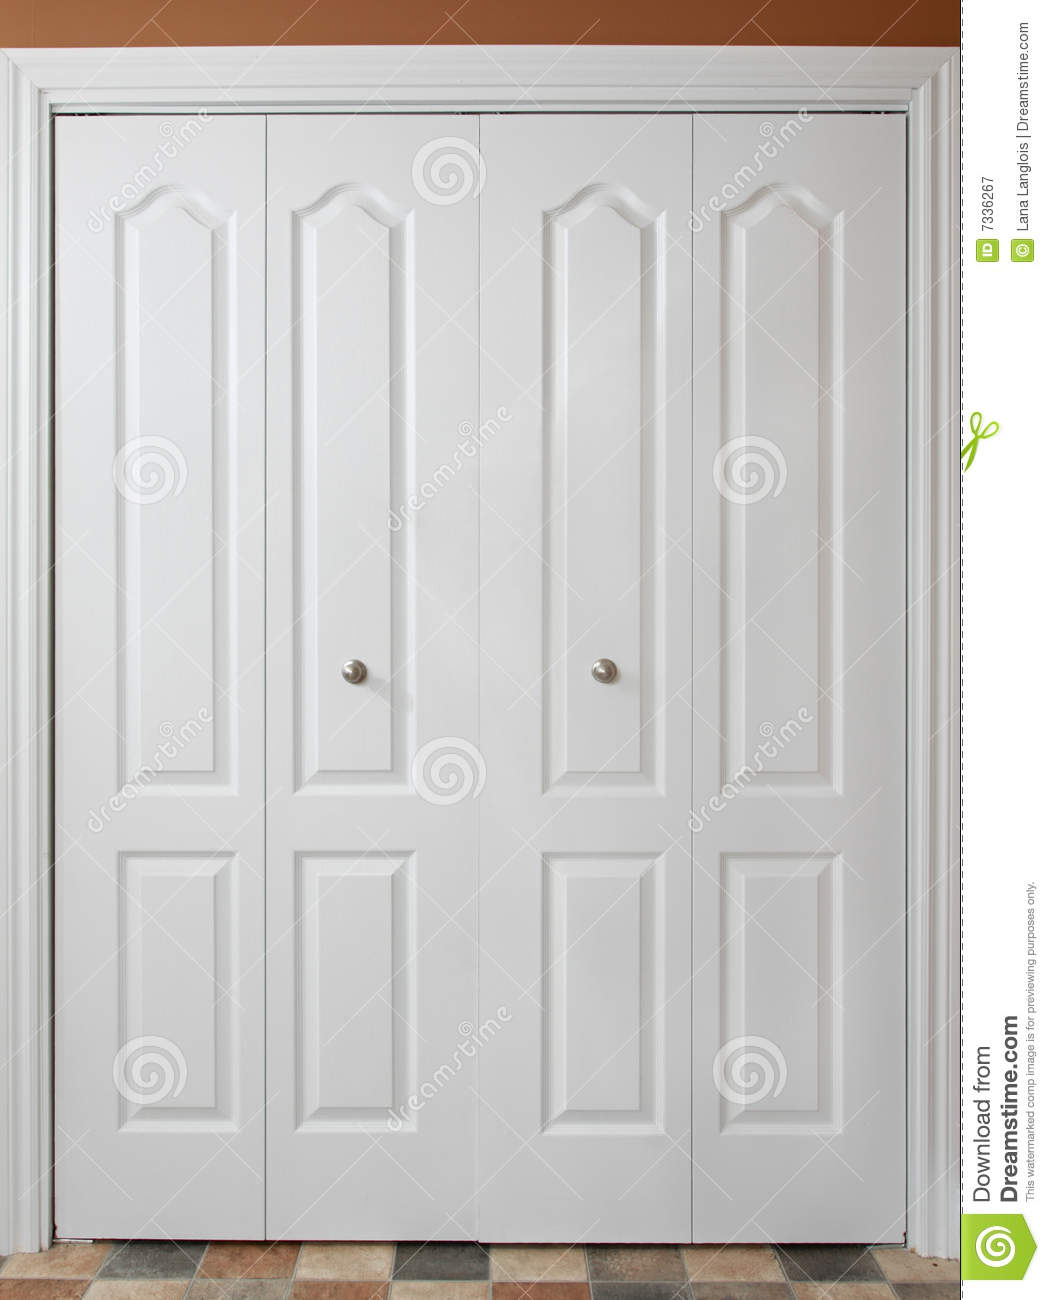 Closed double door clipart picture library Closed Double Door Clipart Decorating Ideas 42558 Doors - hyunky.com picture library